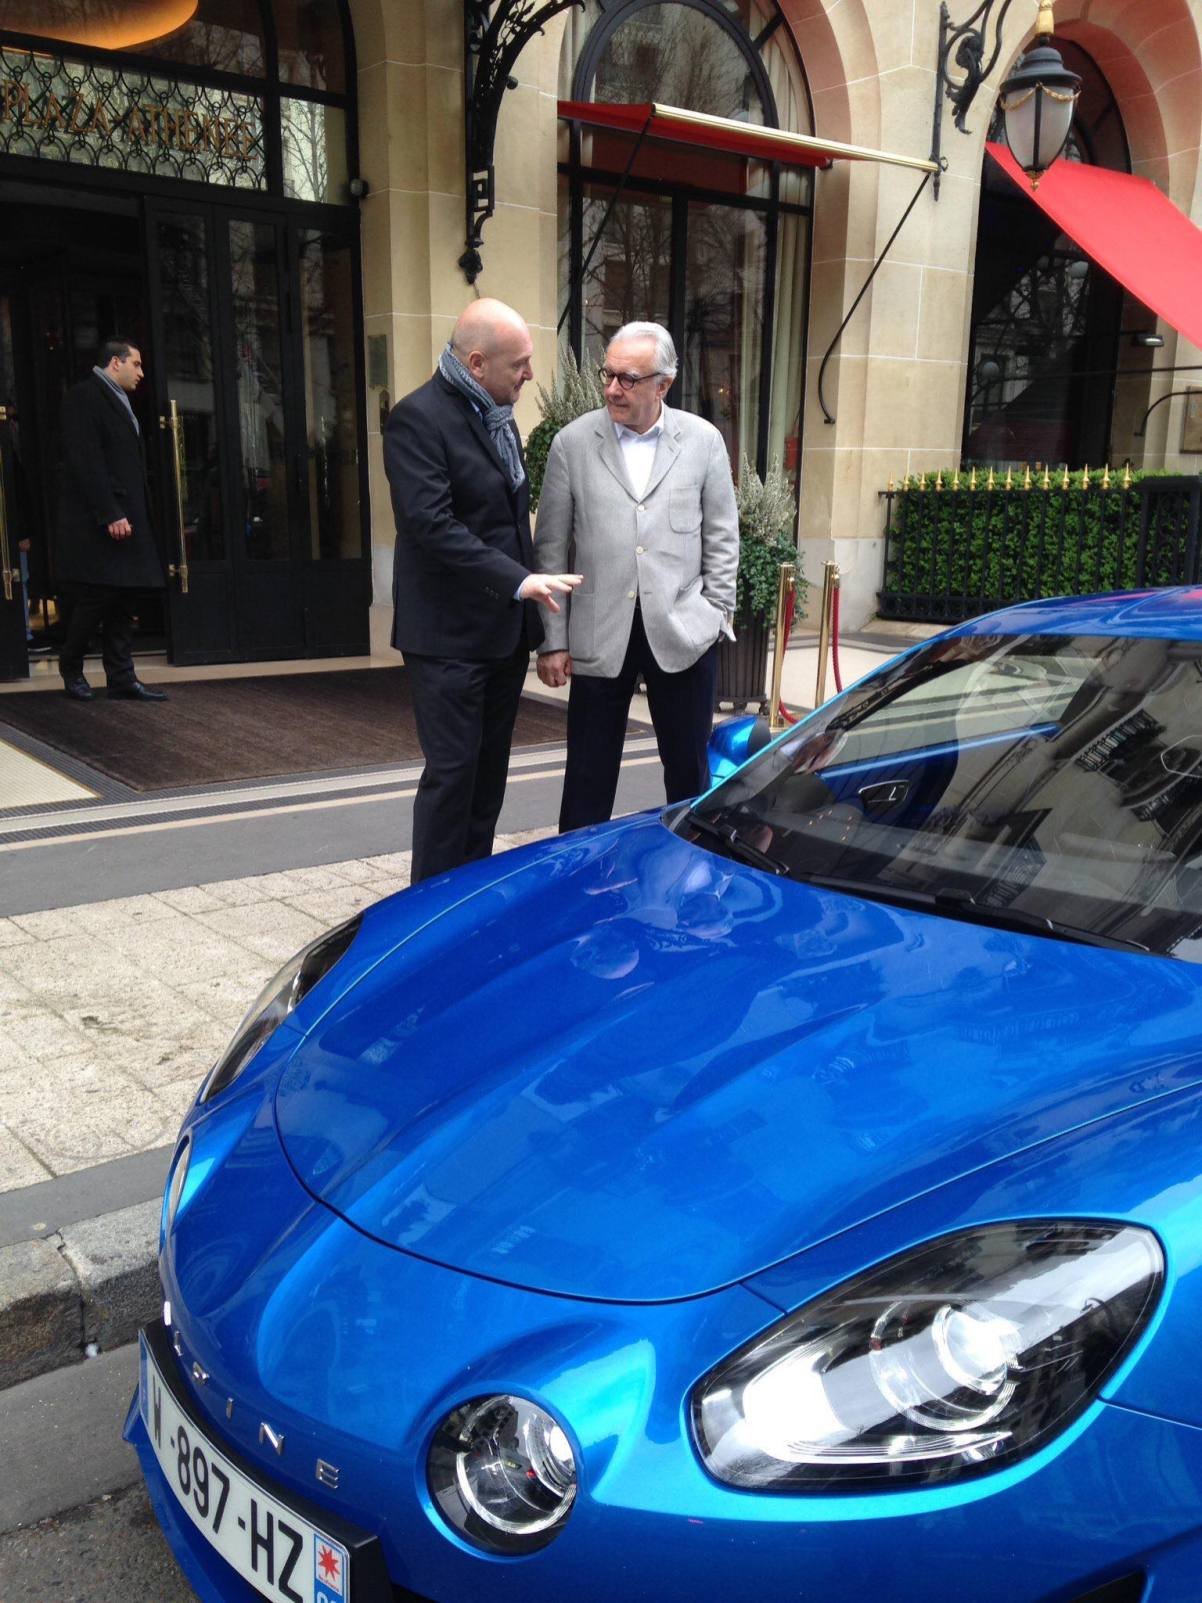 Alpine A110 Good France Paris Alain Ducasse - 2